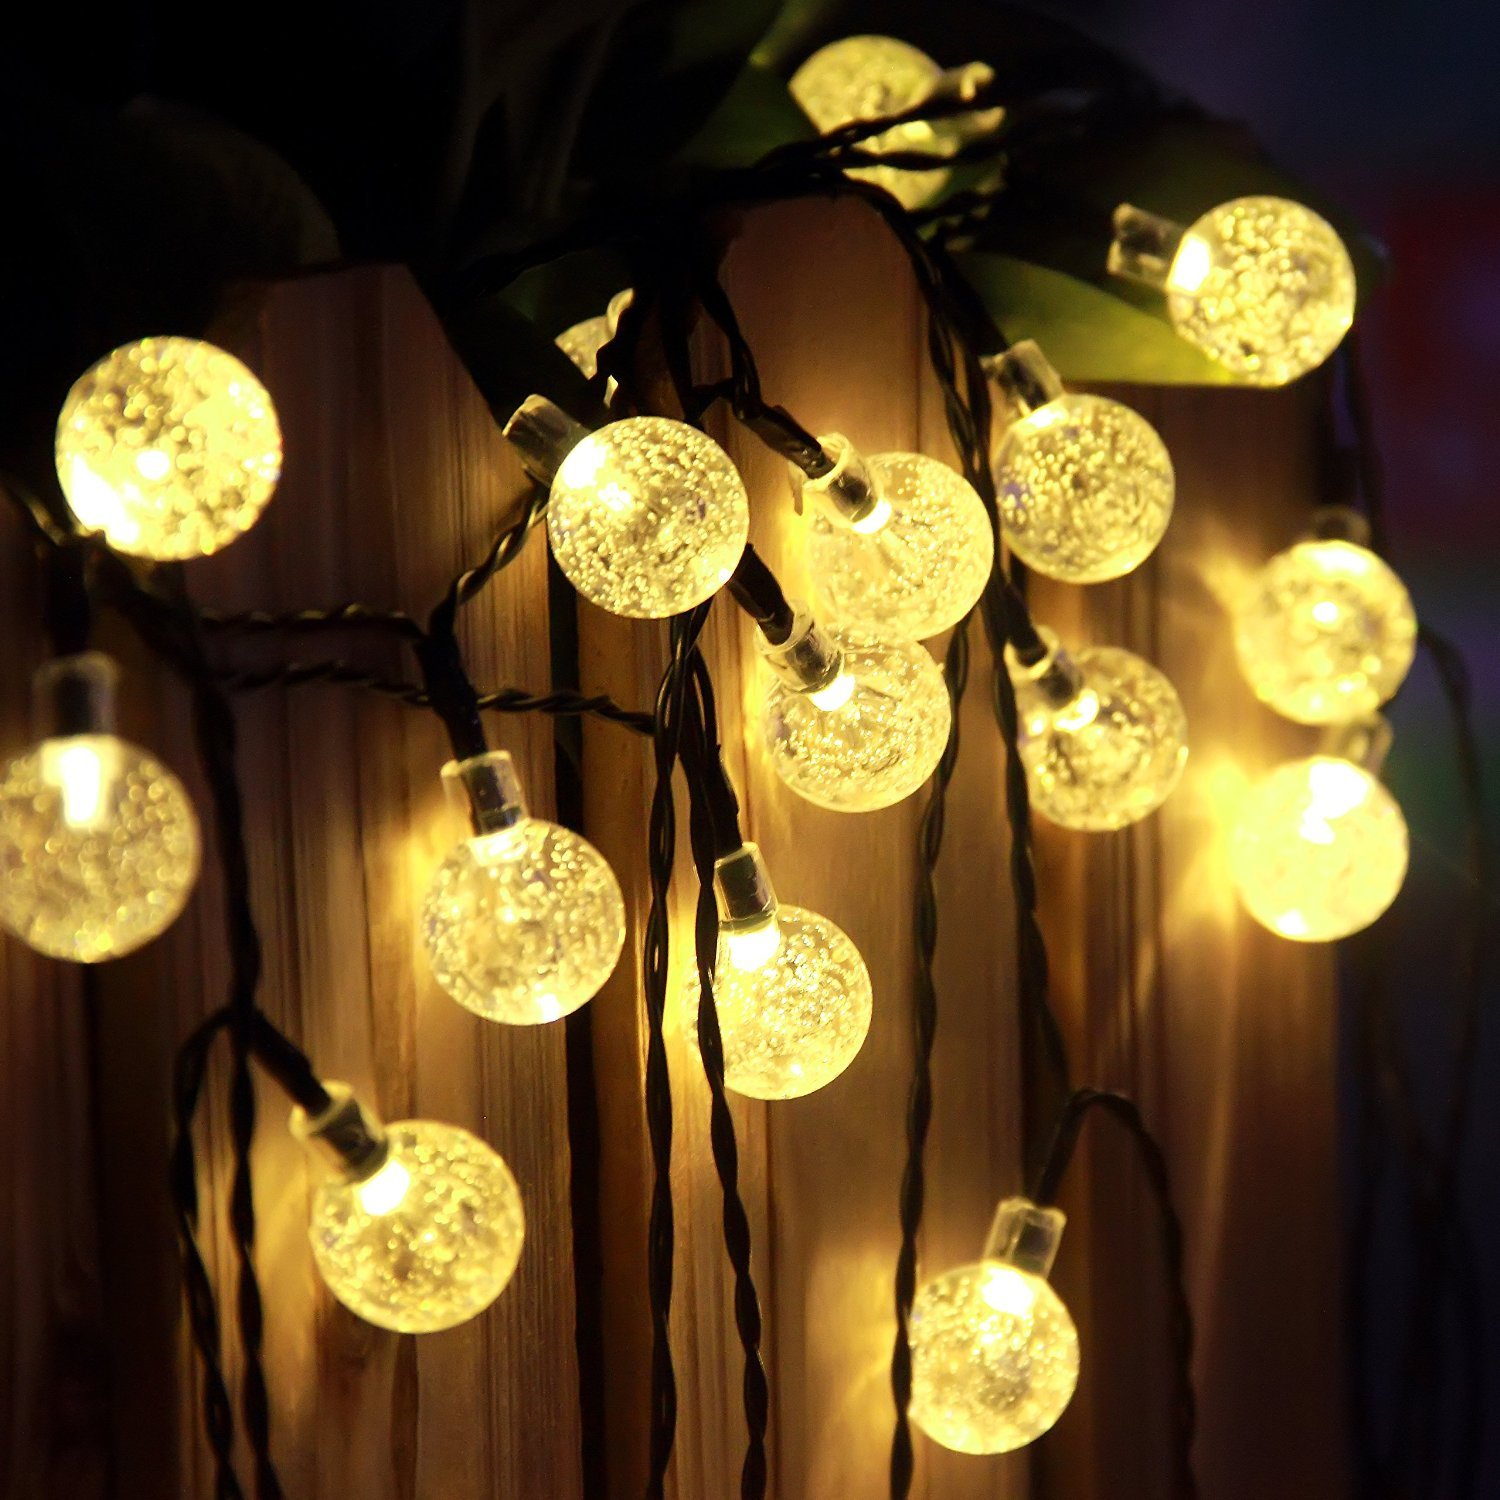 Amazon.com : Solar String Lights, 60LED 36FT Colorful Waterdrop Or Warm  White Bulb Shipped Randomly, Solar String Lights, Solar Lights Outdoor,  Solar Garden ...